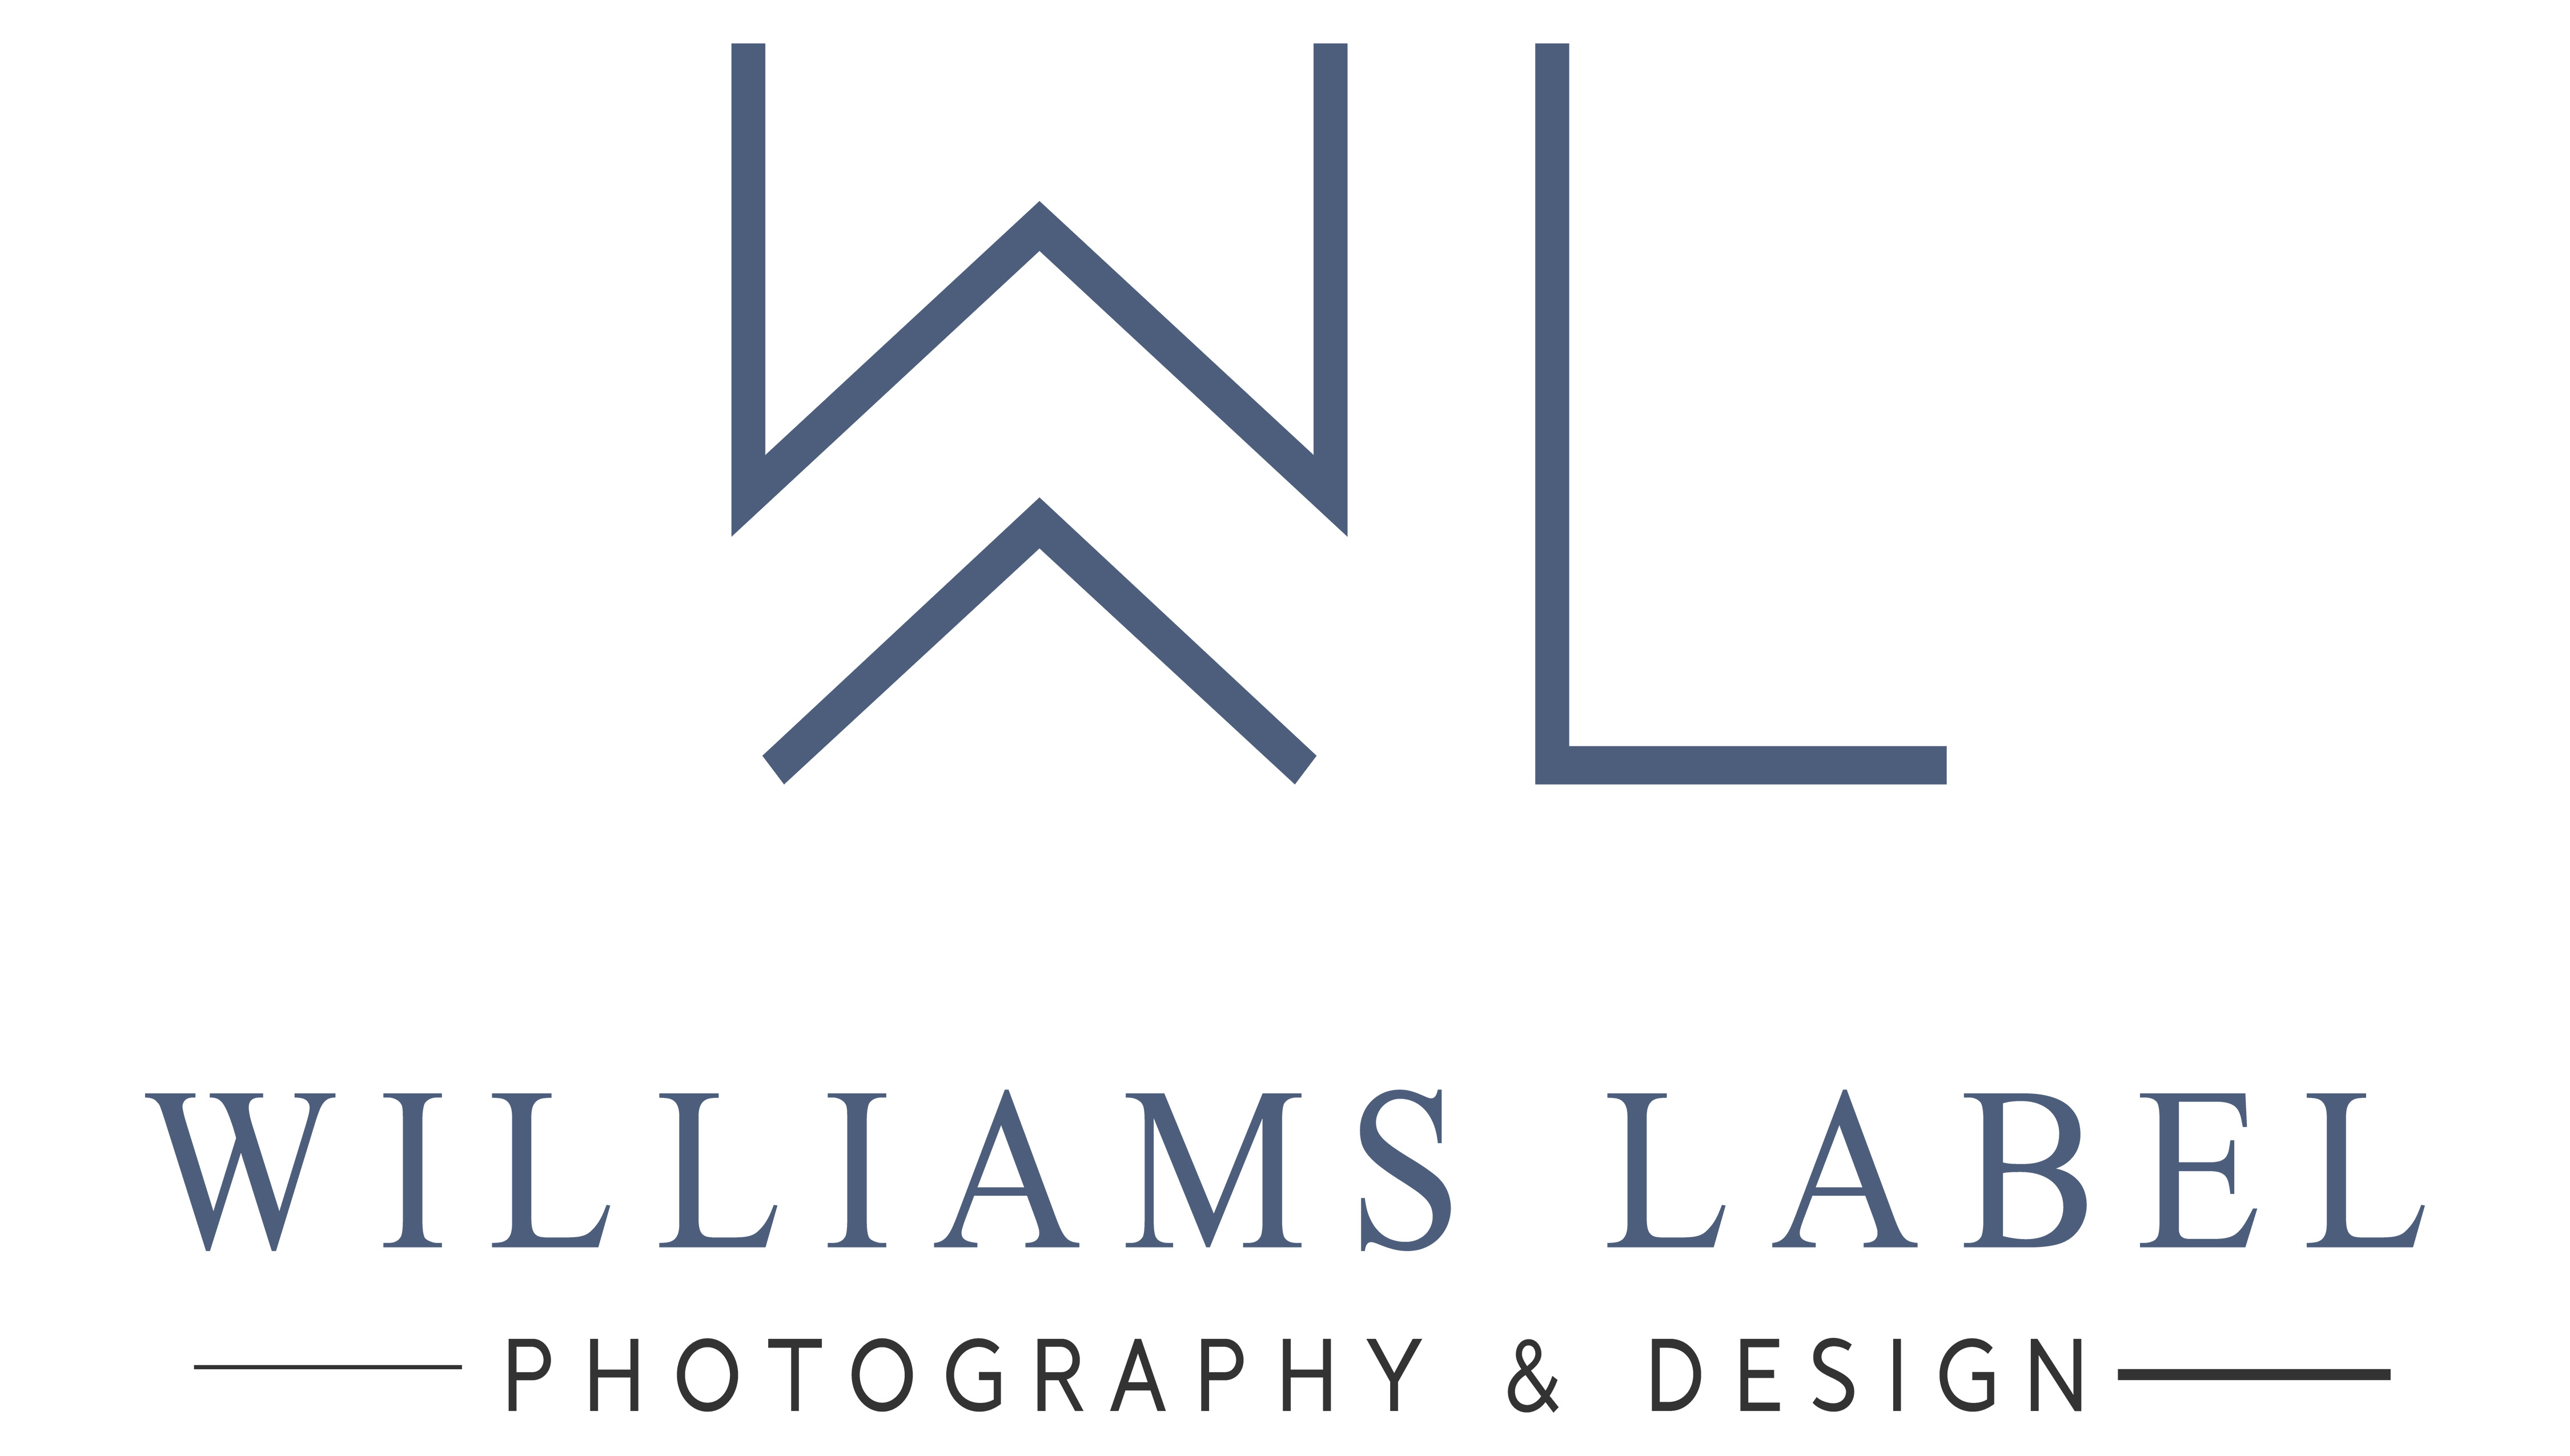 Williams Label Photography and Design - Black Owned